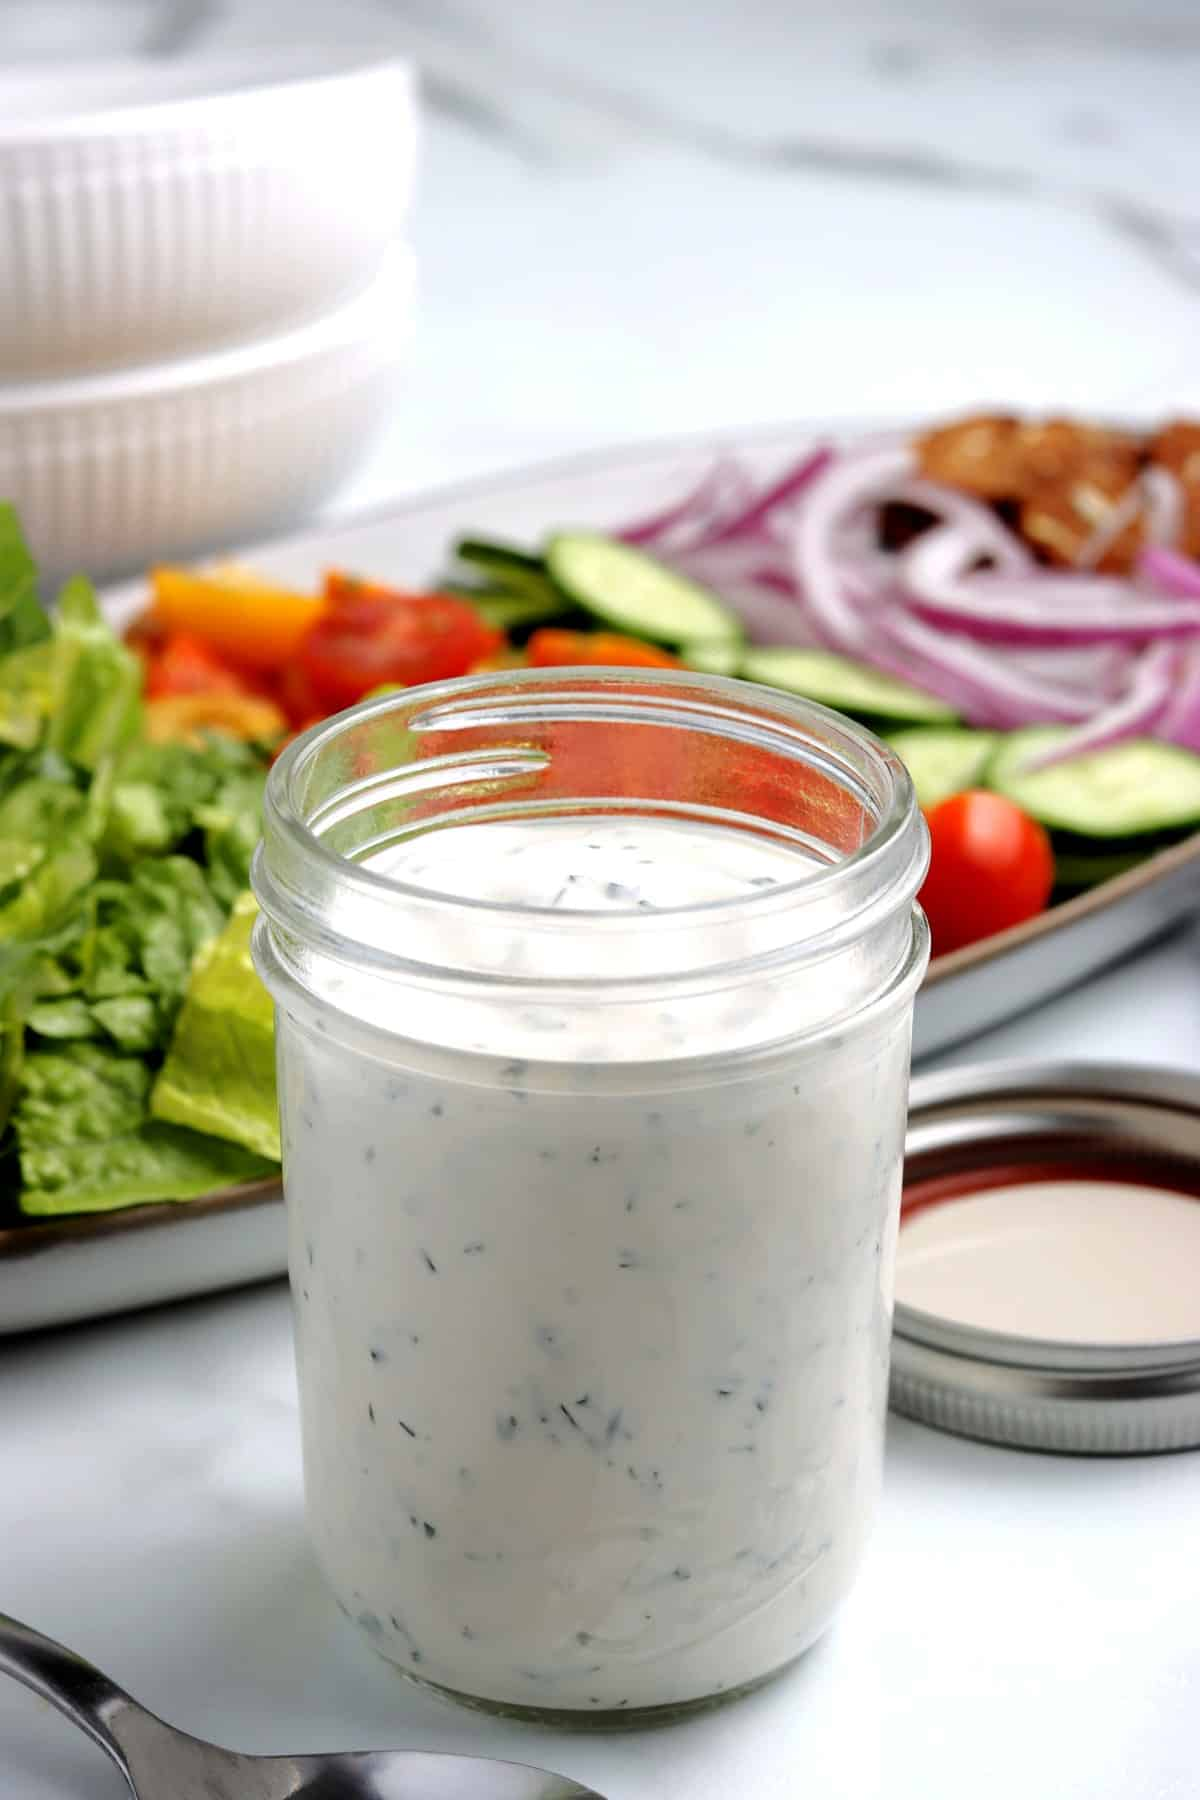 A small jar full of a creamy condiment for fresh salads.